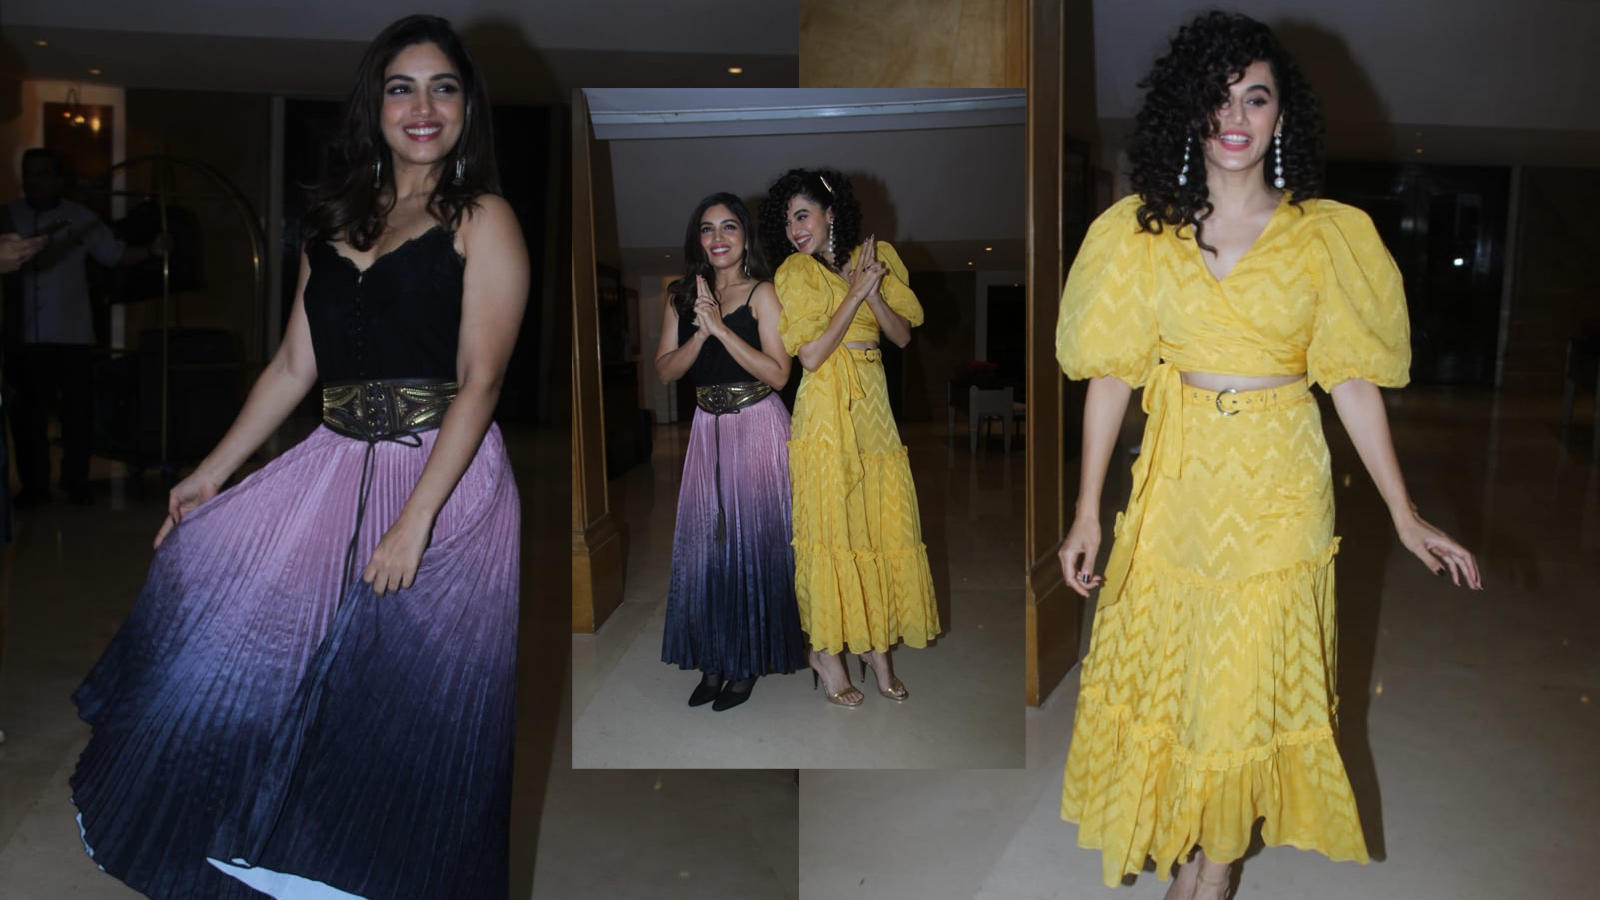 bhumi-pednekar-taapsee-pannu-channel-their-inner-fashionitas